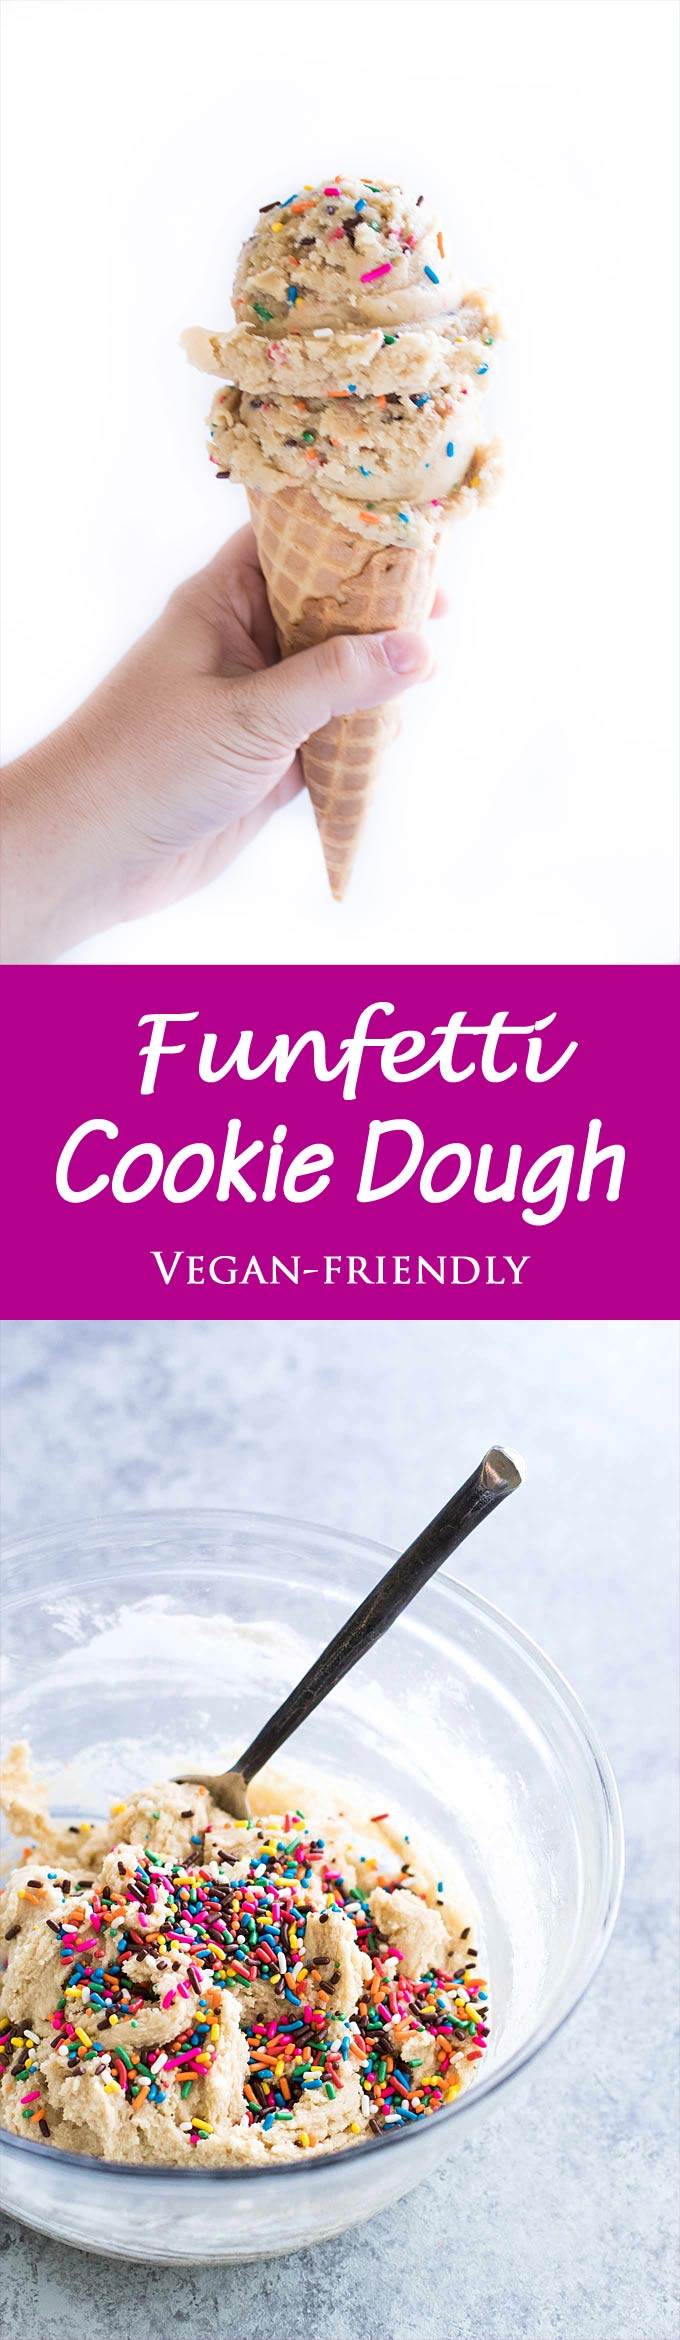 Eggless edible funfetti cookie dough with loads of sprinkles! A fun snack or colorful dessert!